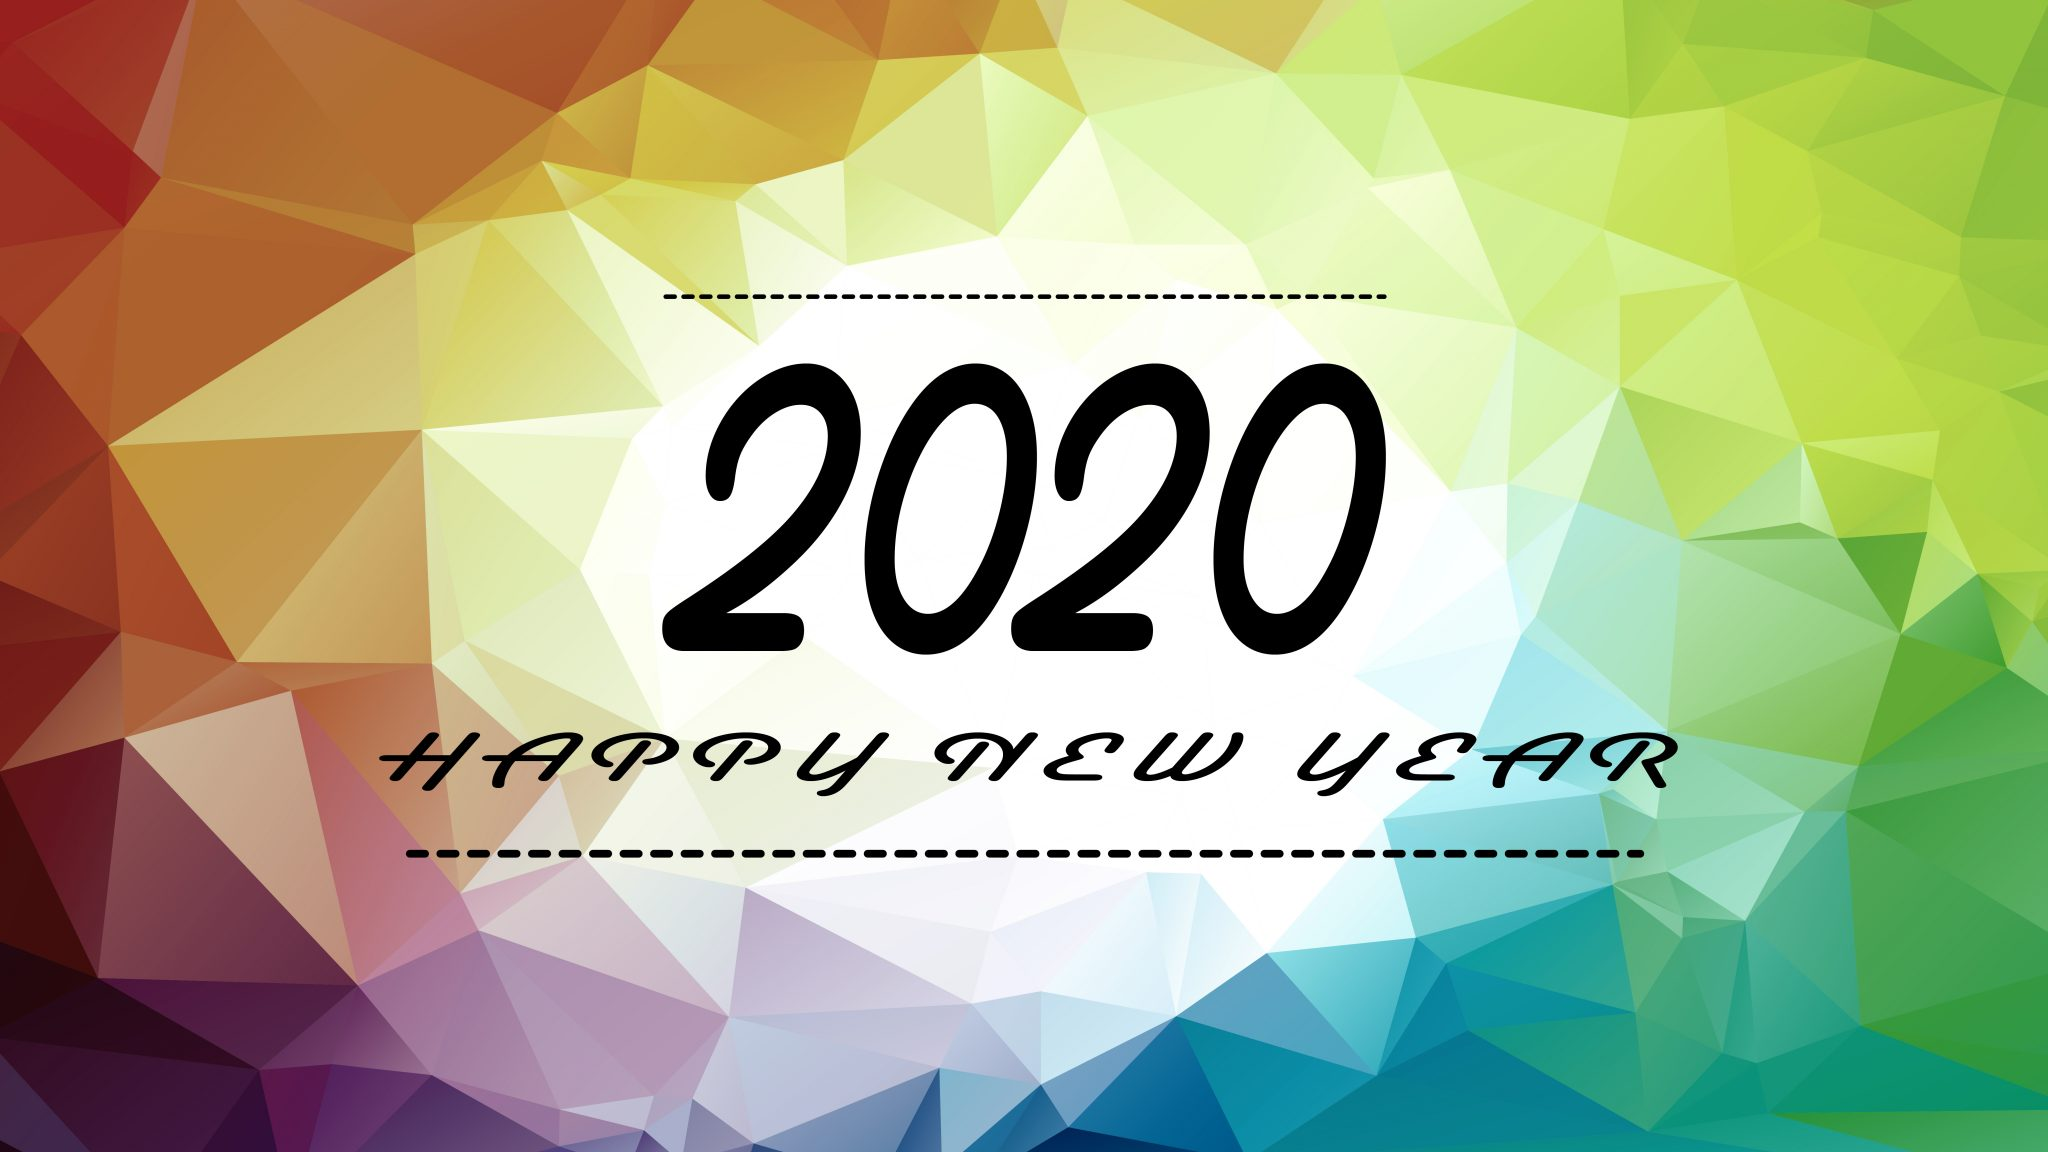 Happy New Year 2020 Digital Signage Content